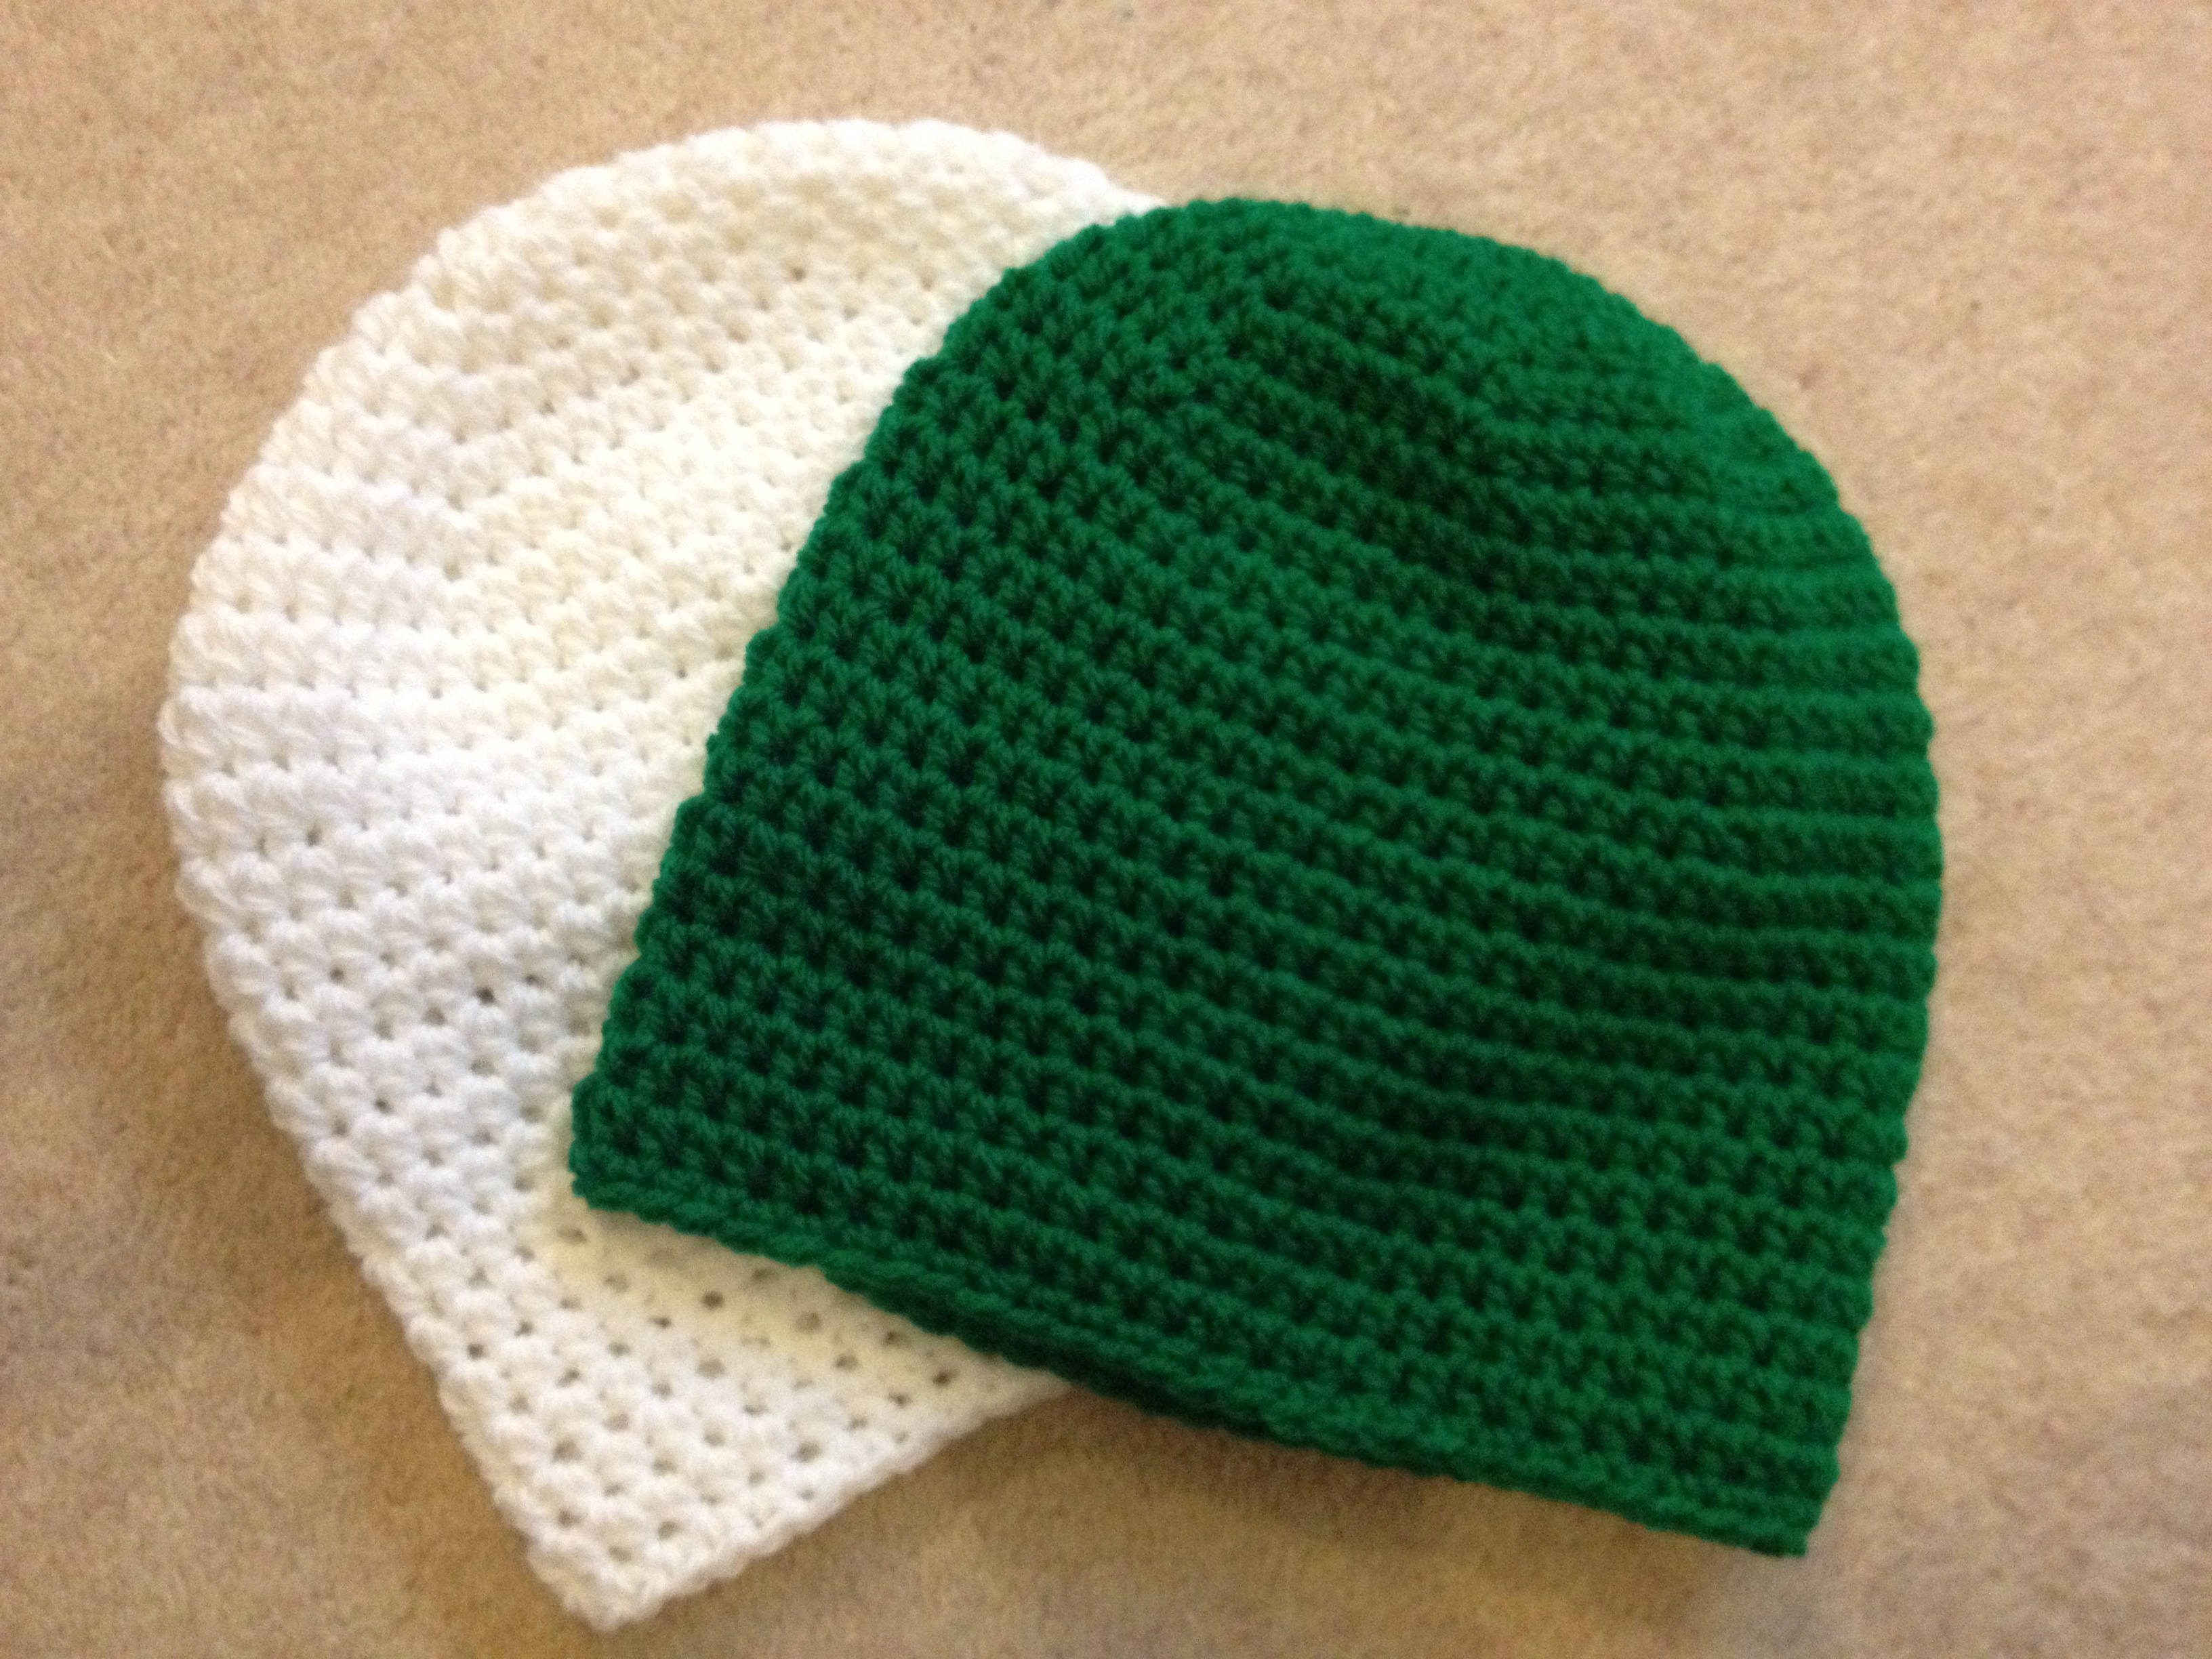 Beanies for brave students